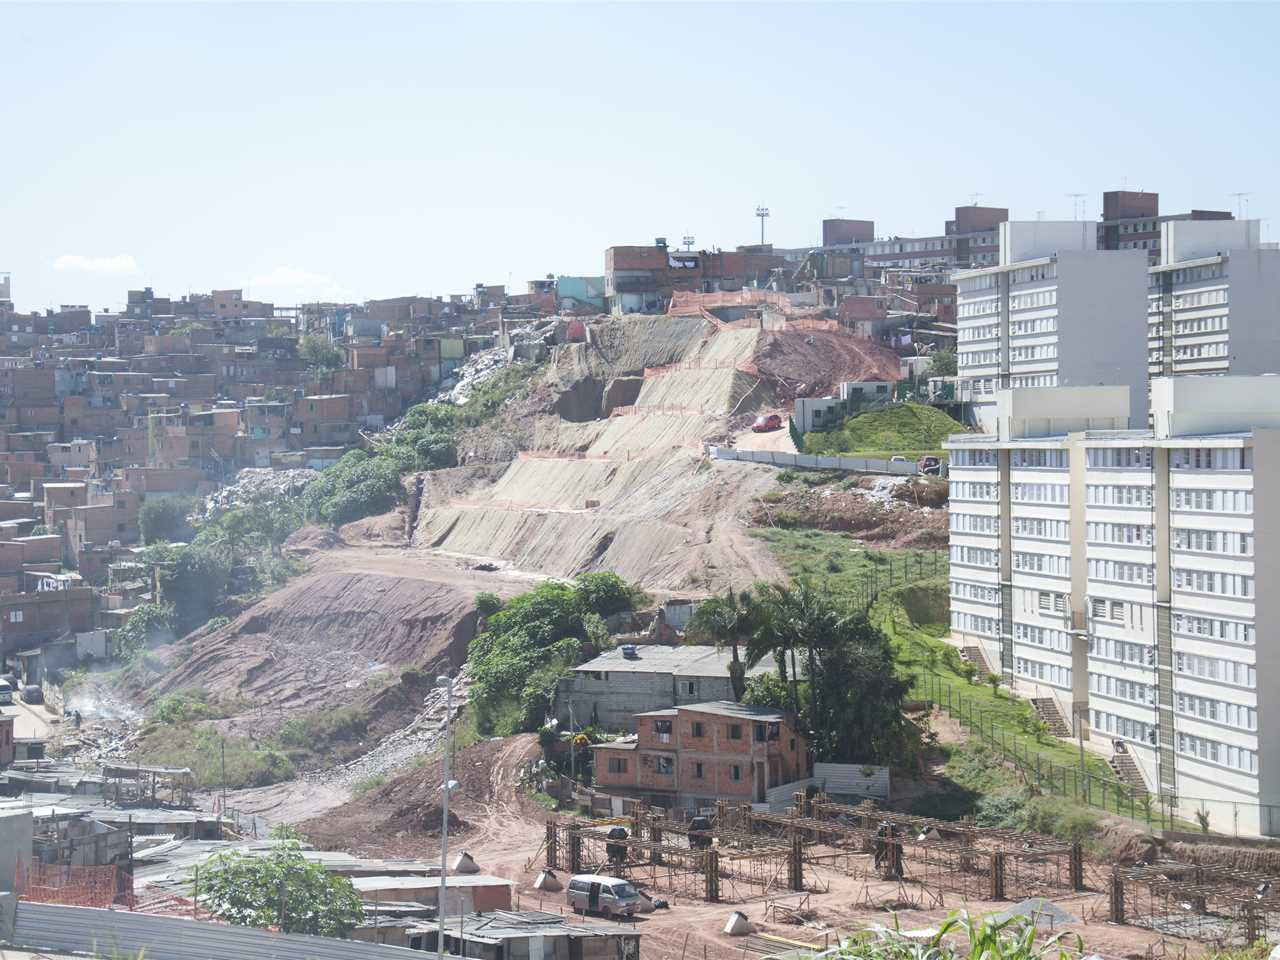 Project update May 2014 - Urban remediation and civic infrastructure hub, São Paulo, Brazil